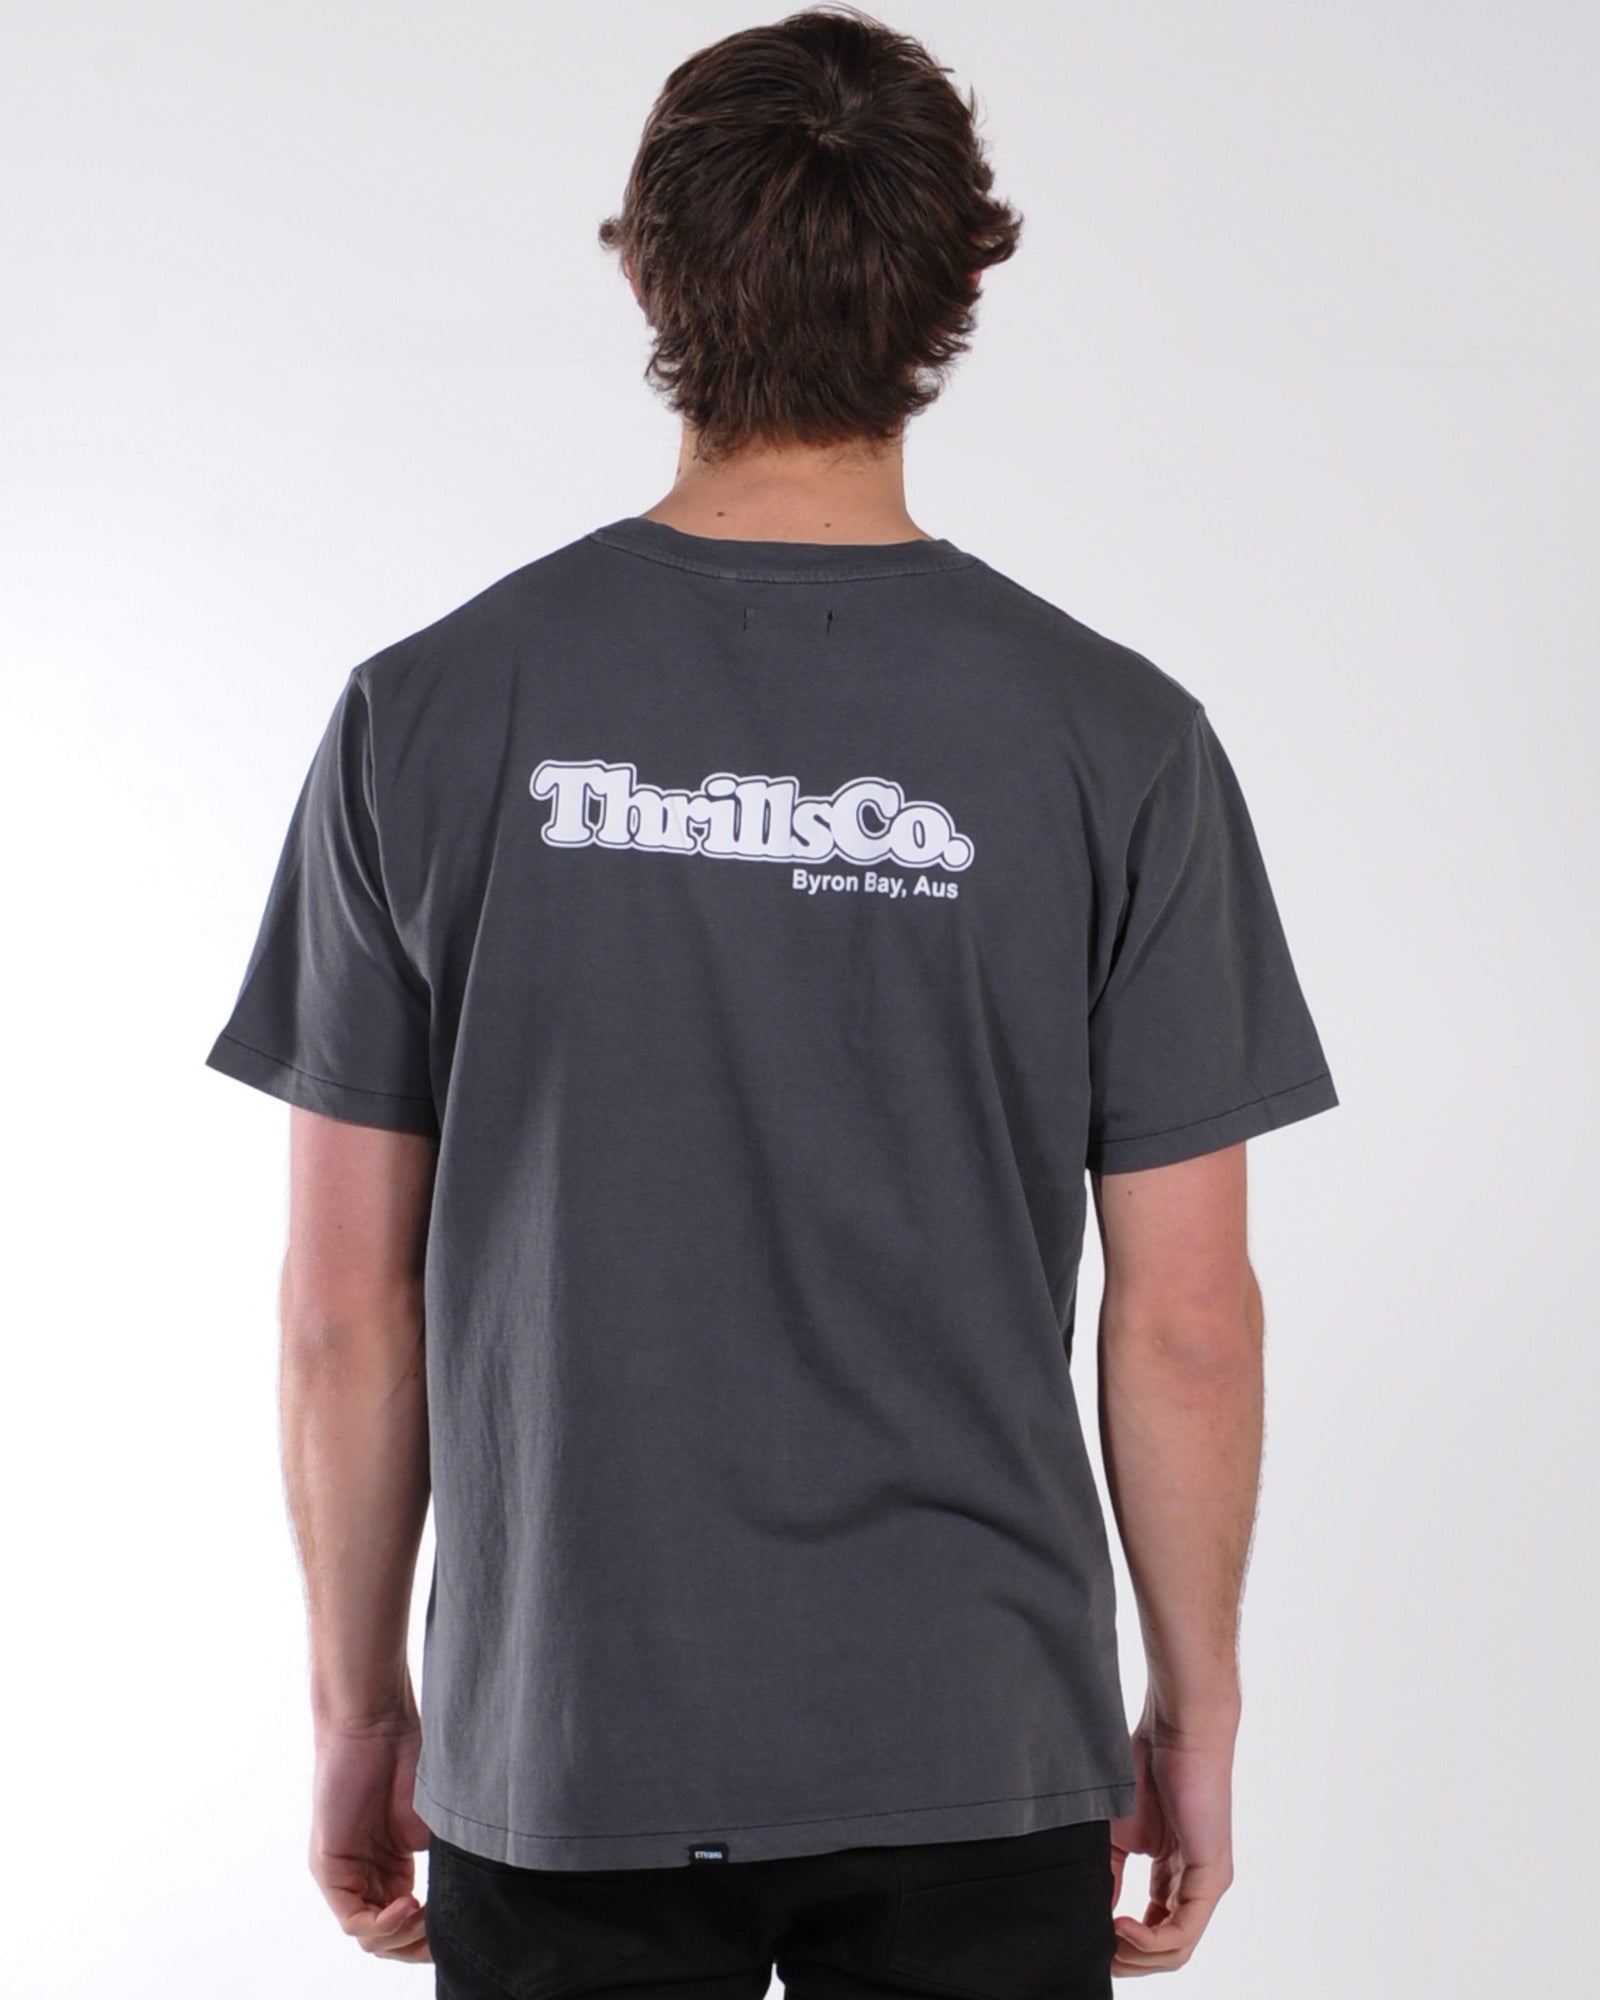 Thrills Howled Merch Tee - Black